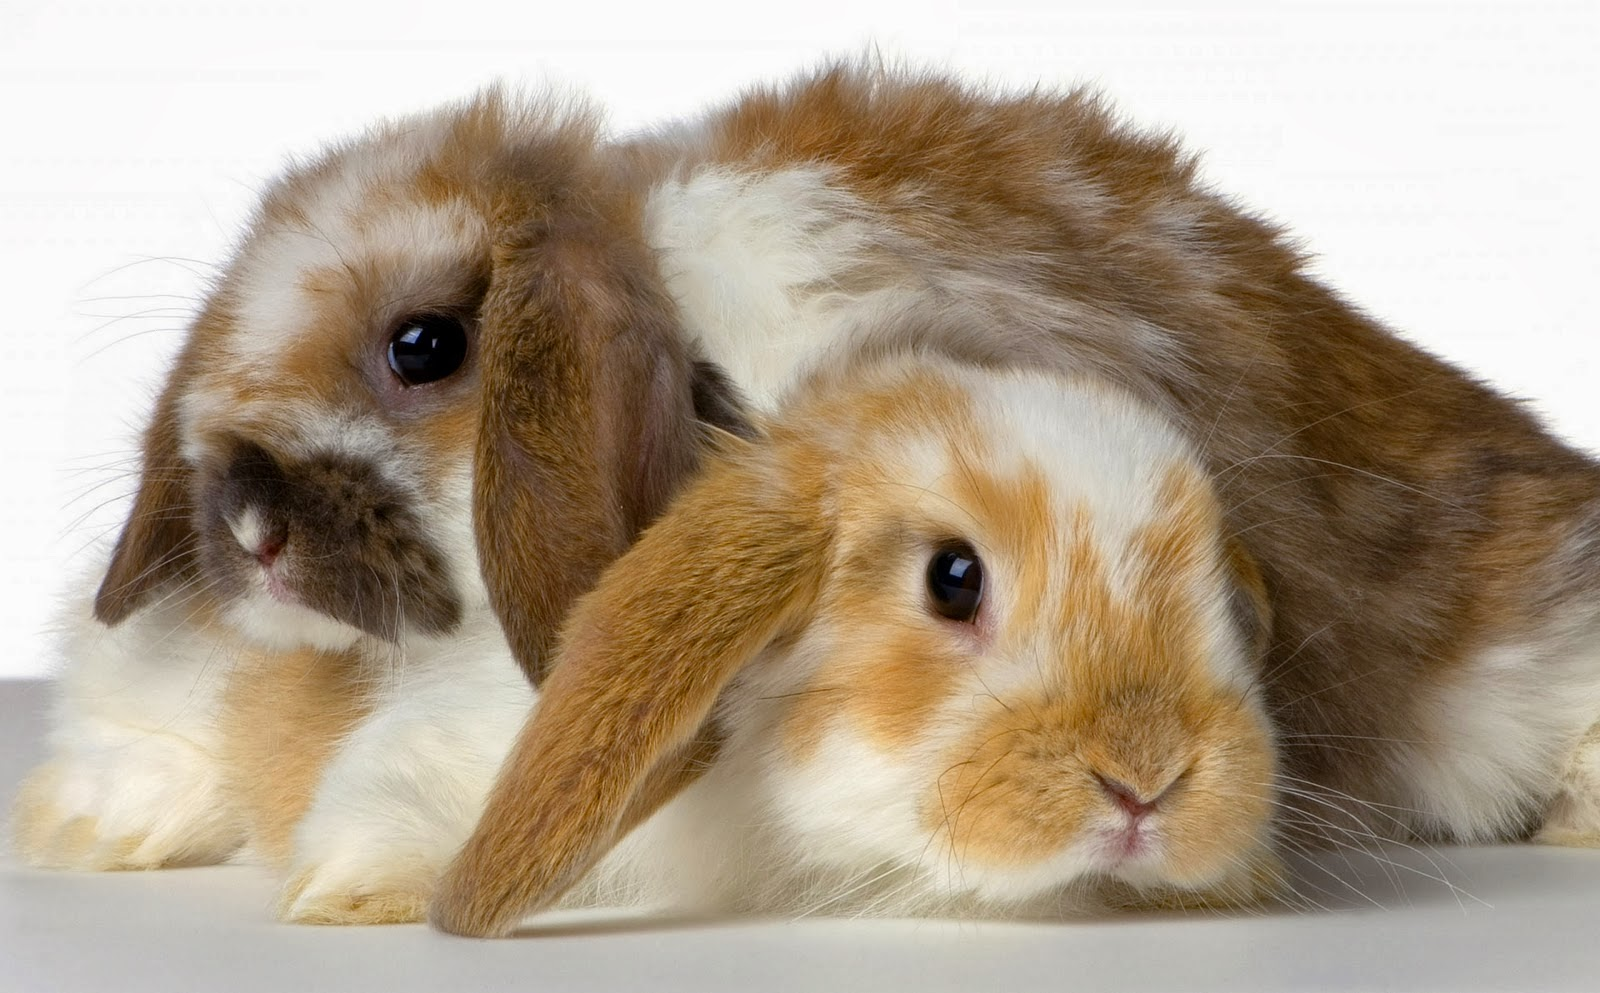 HD Wallpapers Downloads Beautiful Baby Rabbits Wallpapers 1600x993